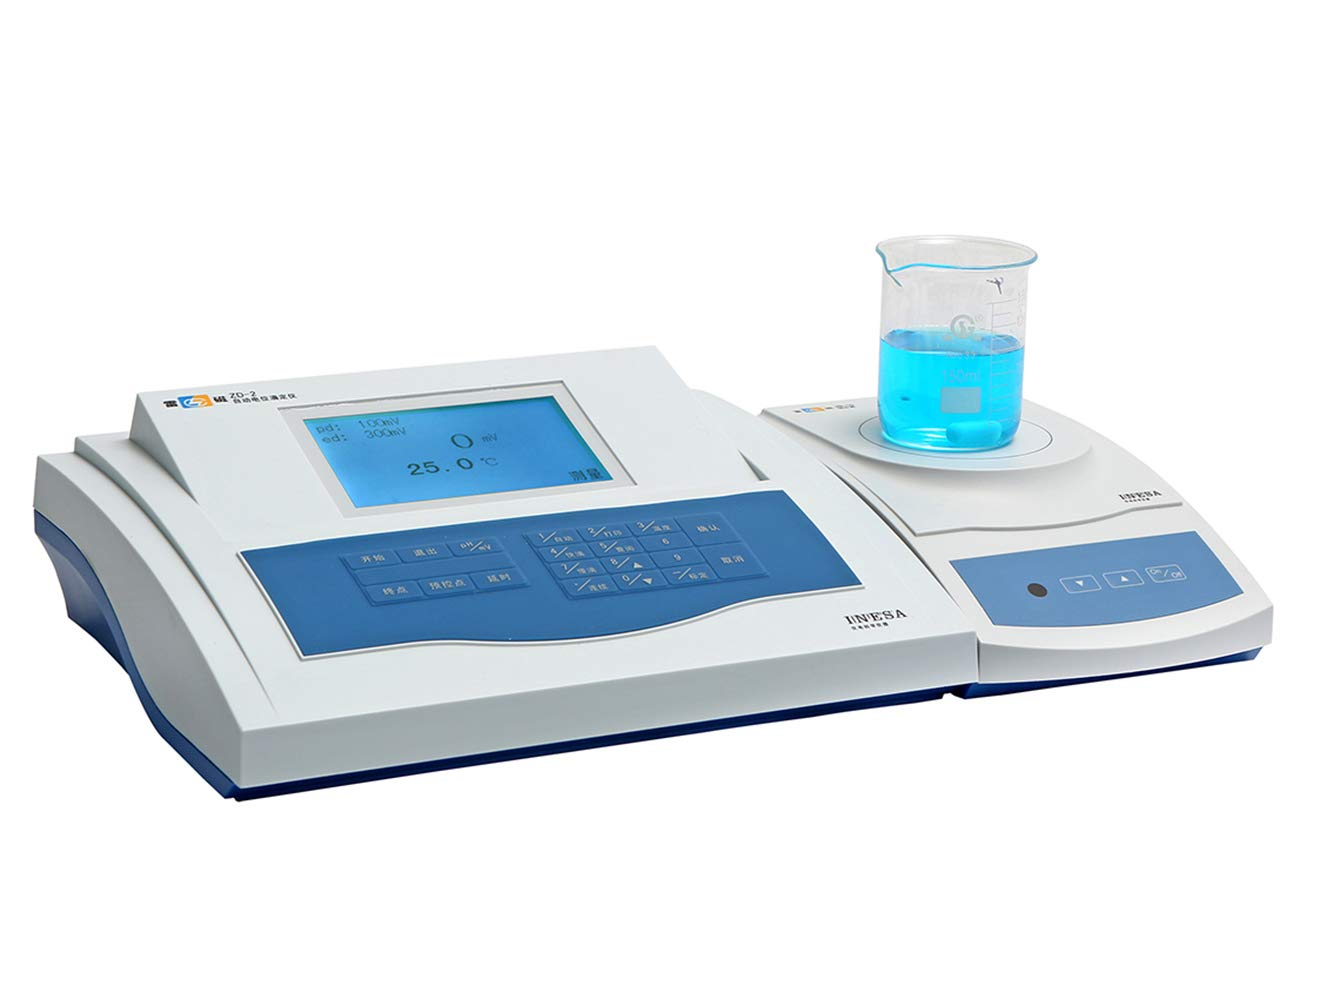 Hanchen ZD-2 Automatic Potentiometric Titrator with 3 Modes and Pre Control System Digital Titration Instrument 0.00~14.00PH, -1400 to 1400mv for Testing PH and Titrimetric Analysis by Hanchen